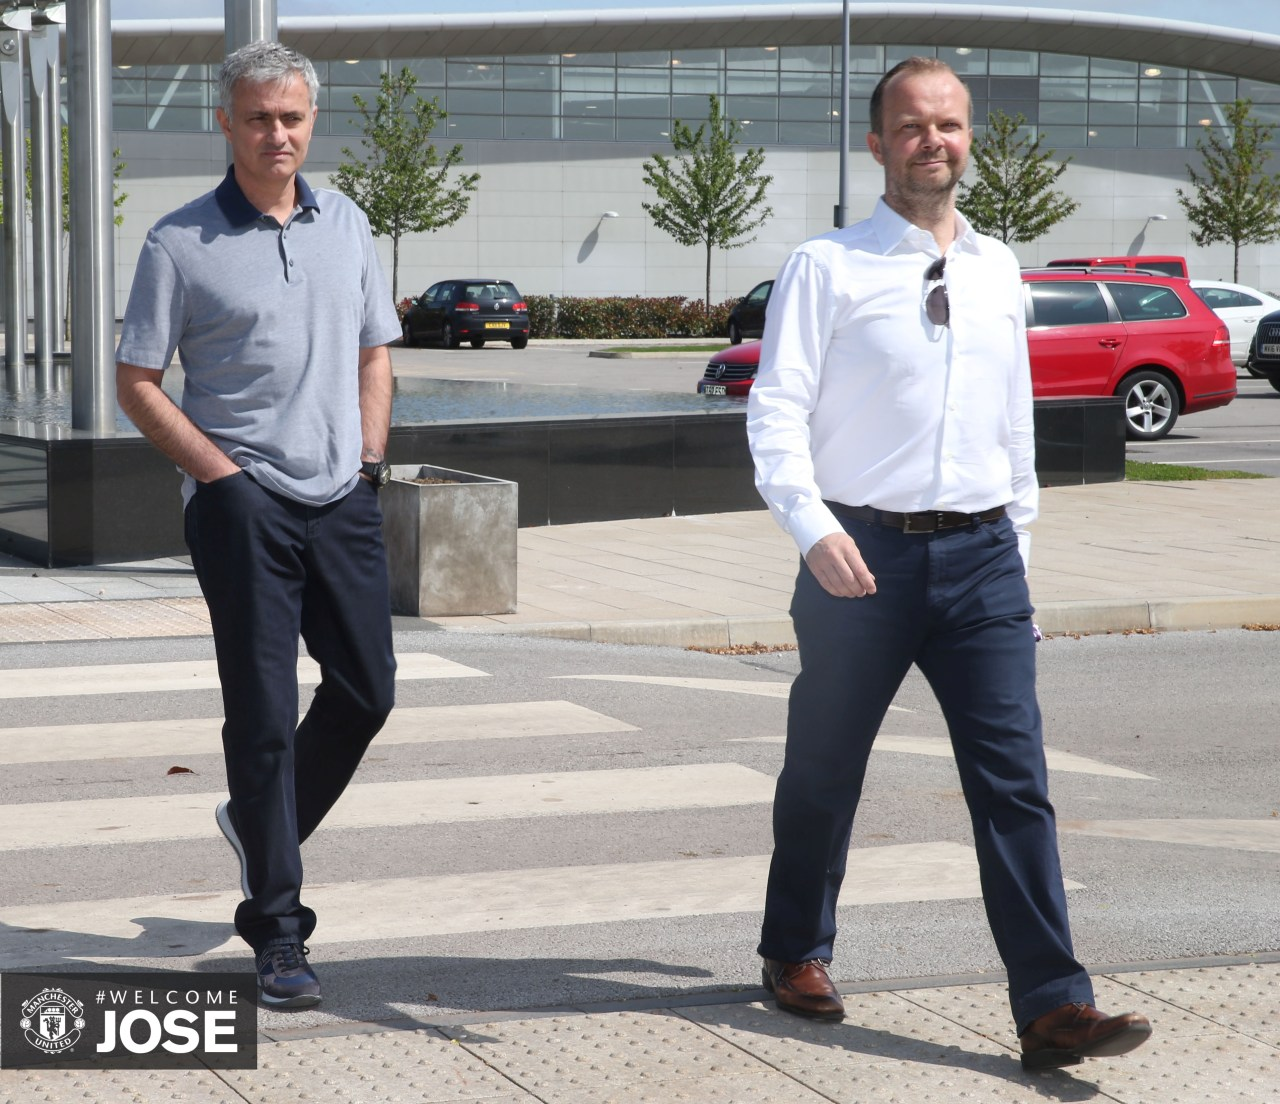 Jose Mourinho has made his first visit to the Aon Training Complex since being confirmed as the new Manchester United manager.